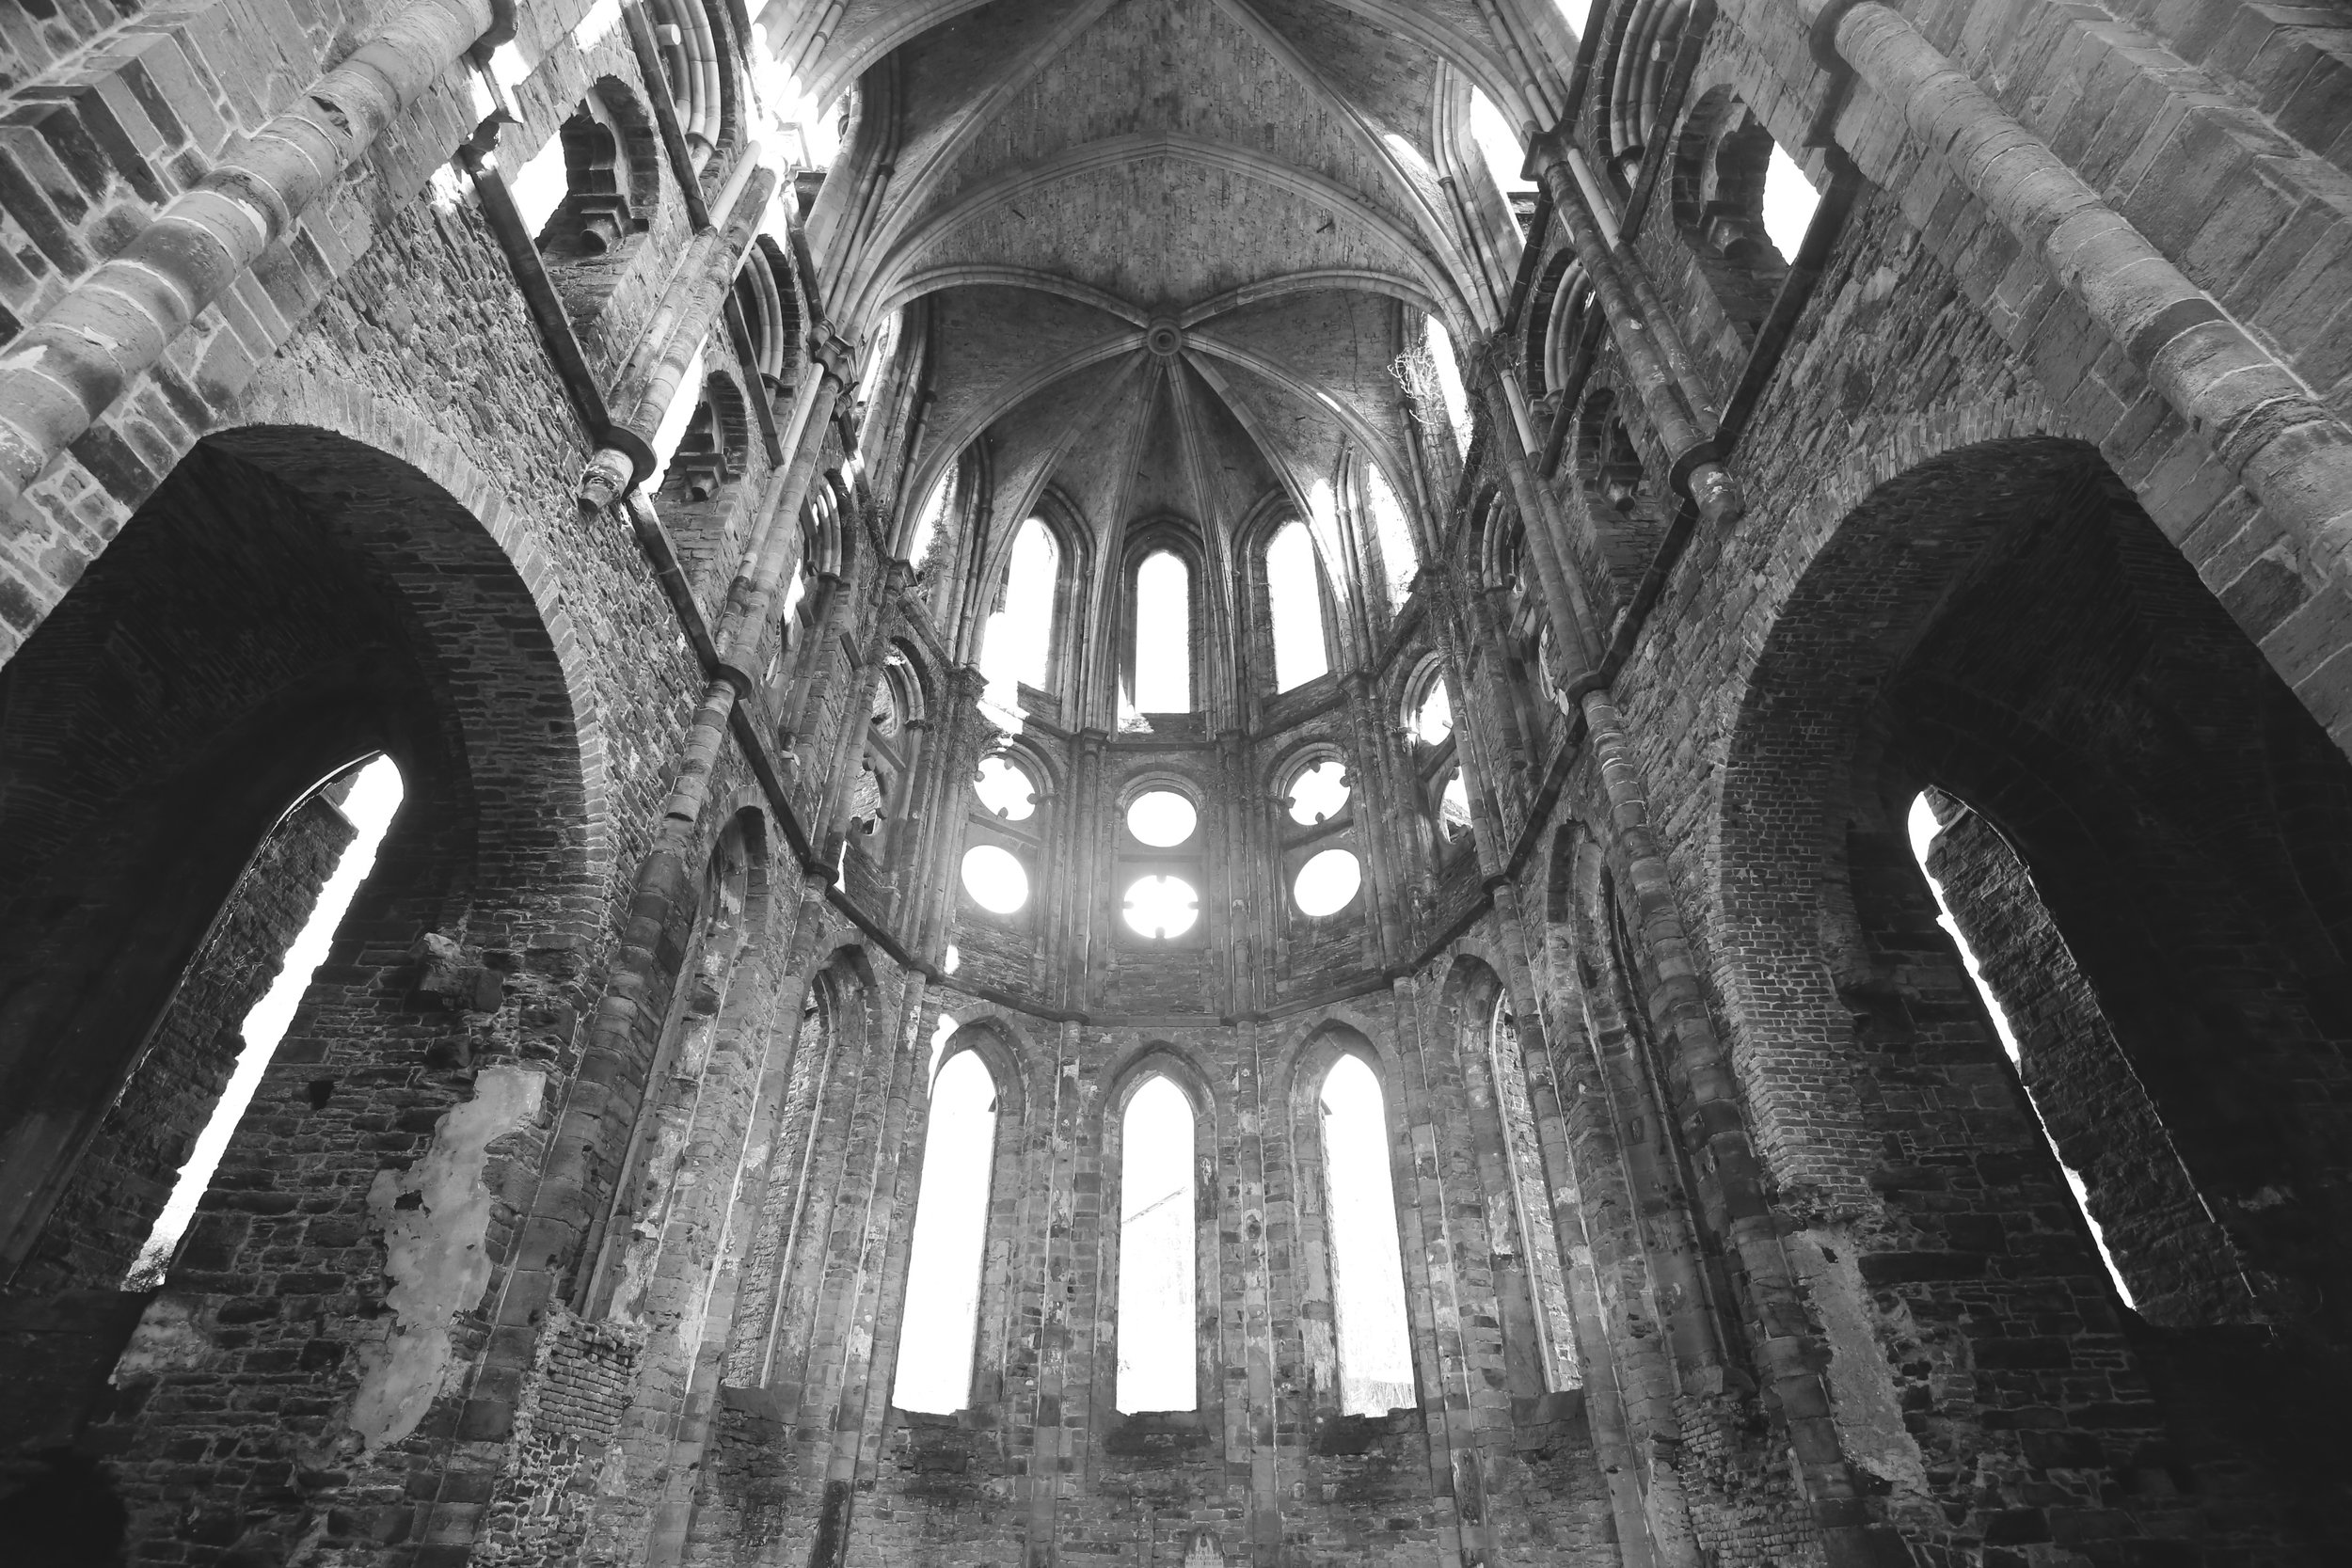 Light pours through the windows in the old stone apse.